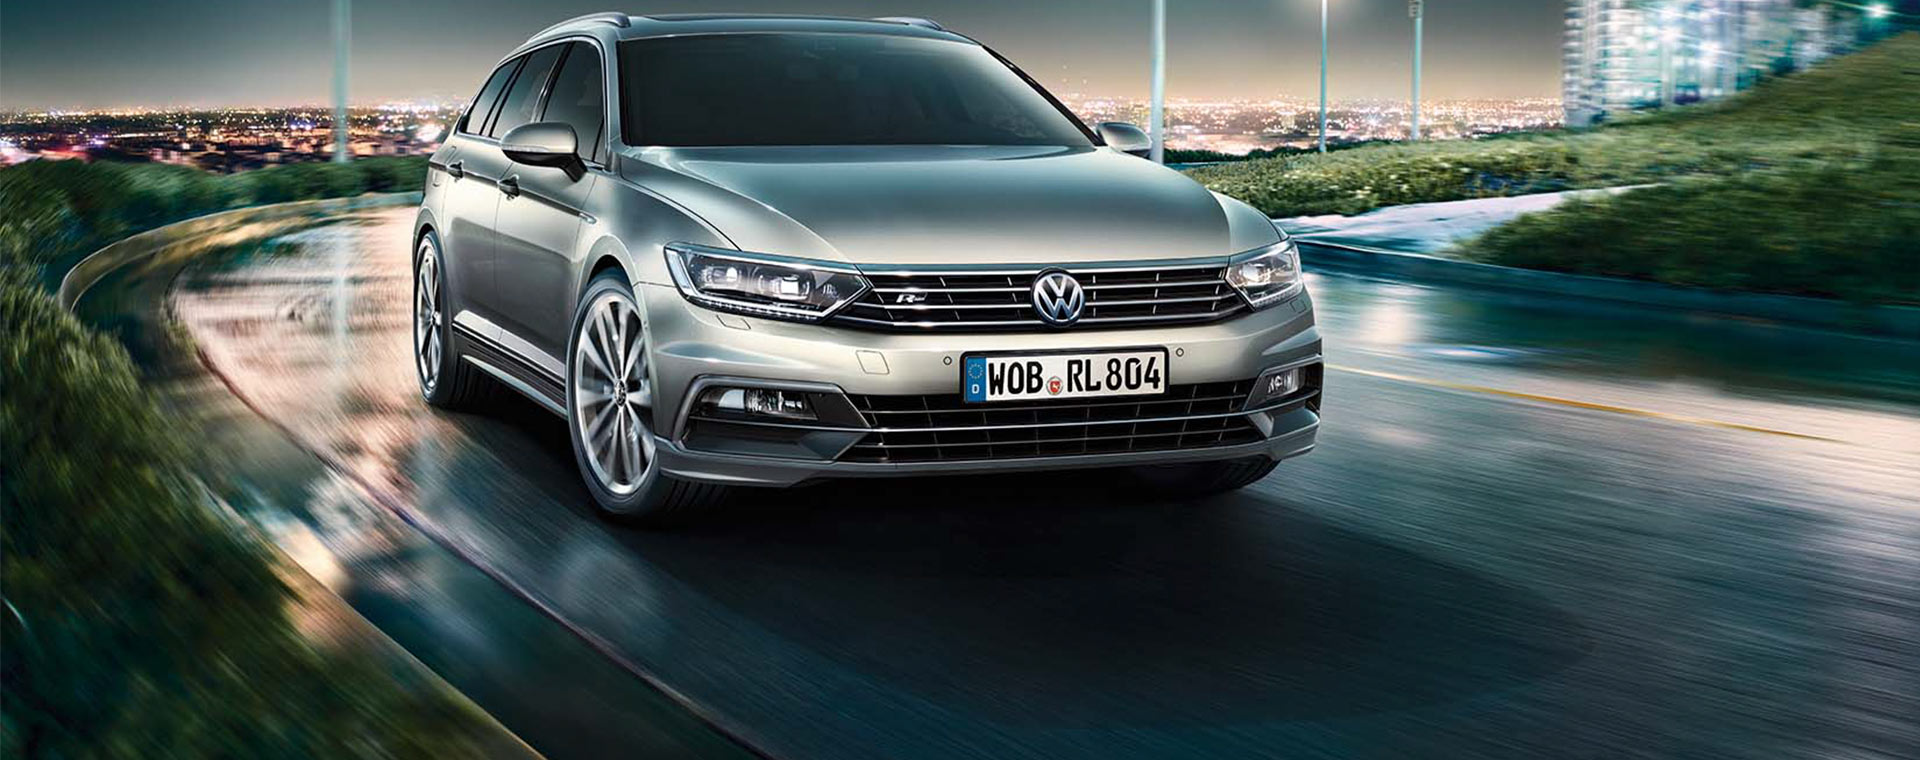 Headerbild-VW-Passat